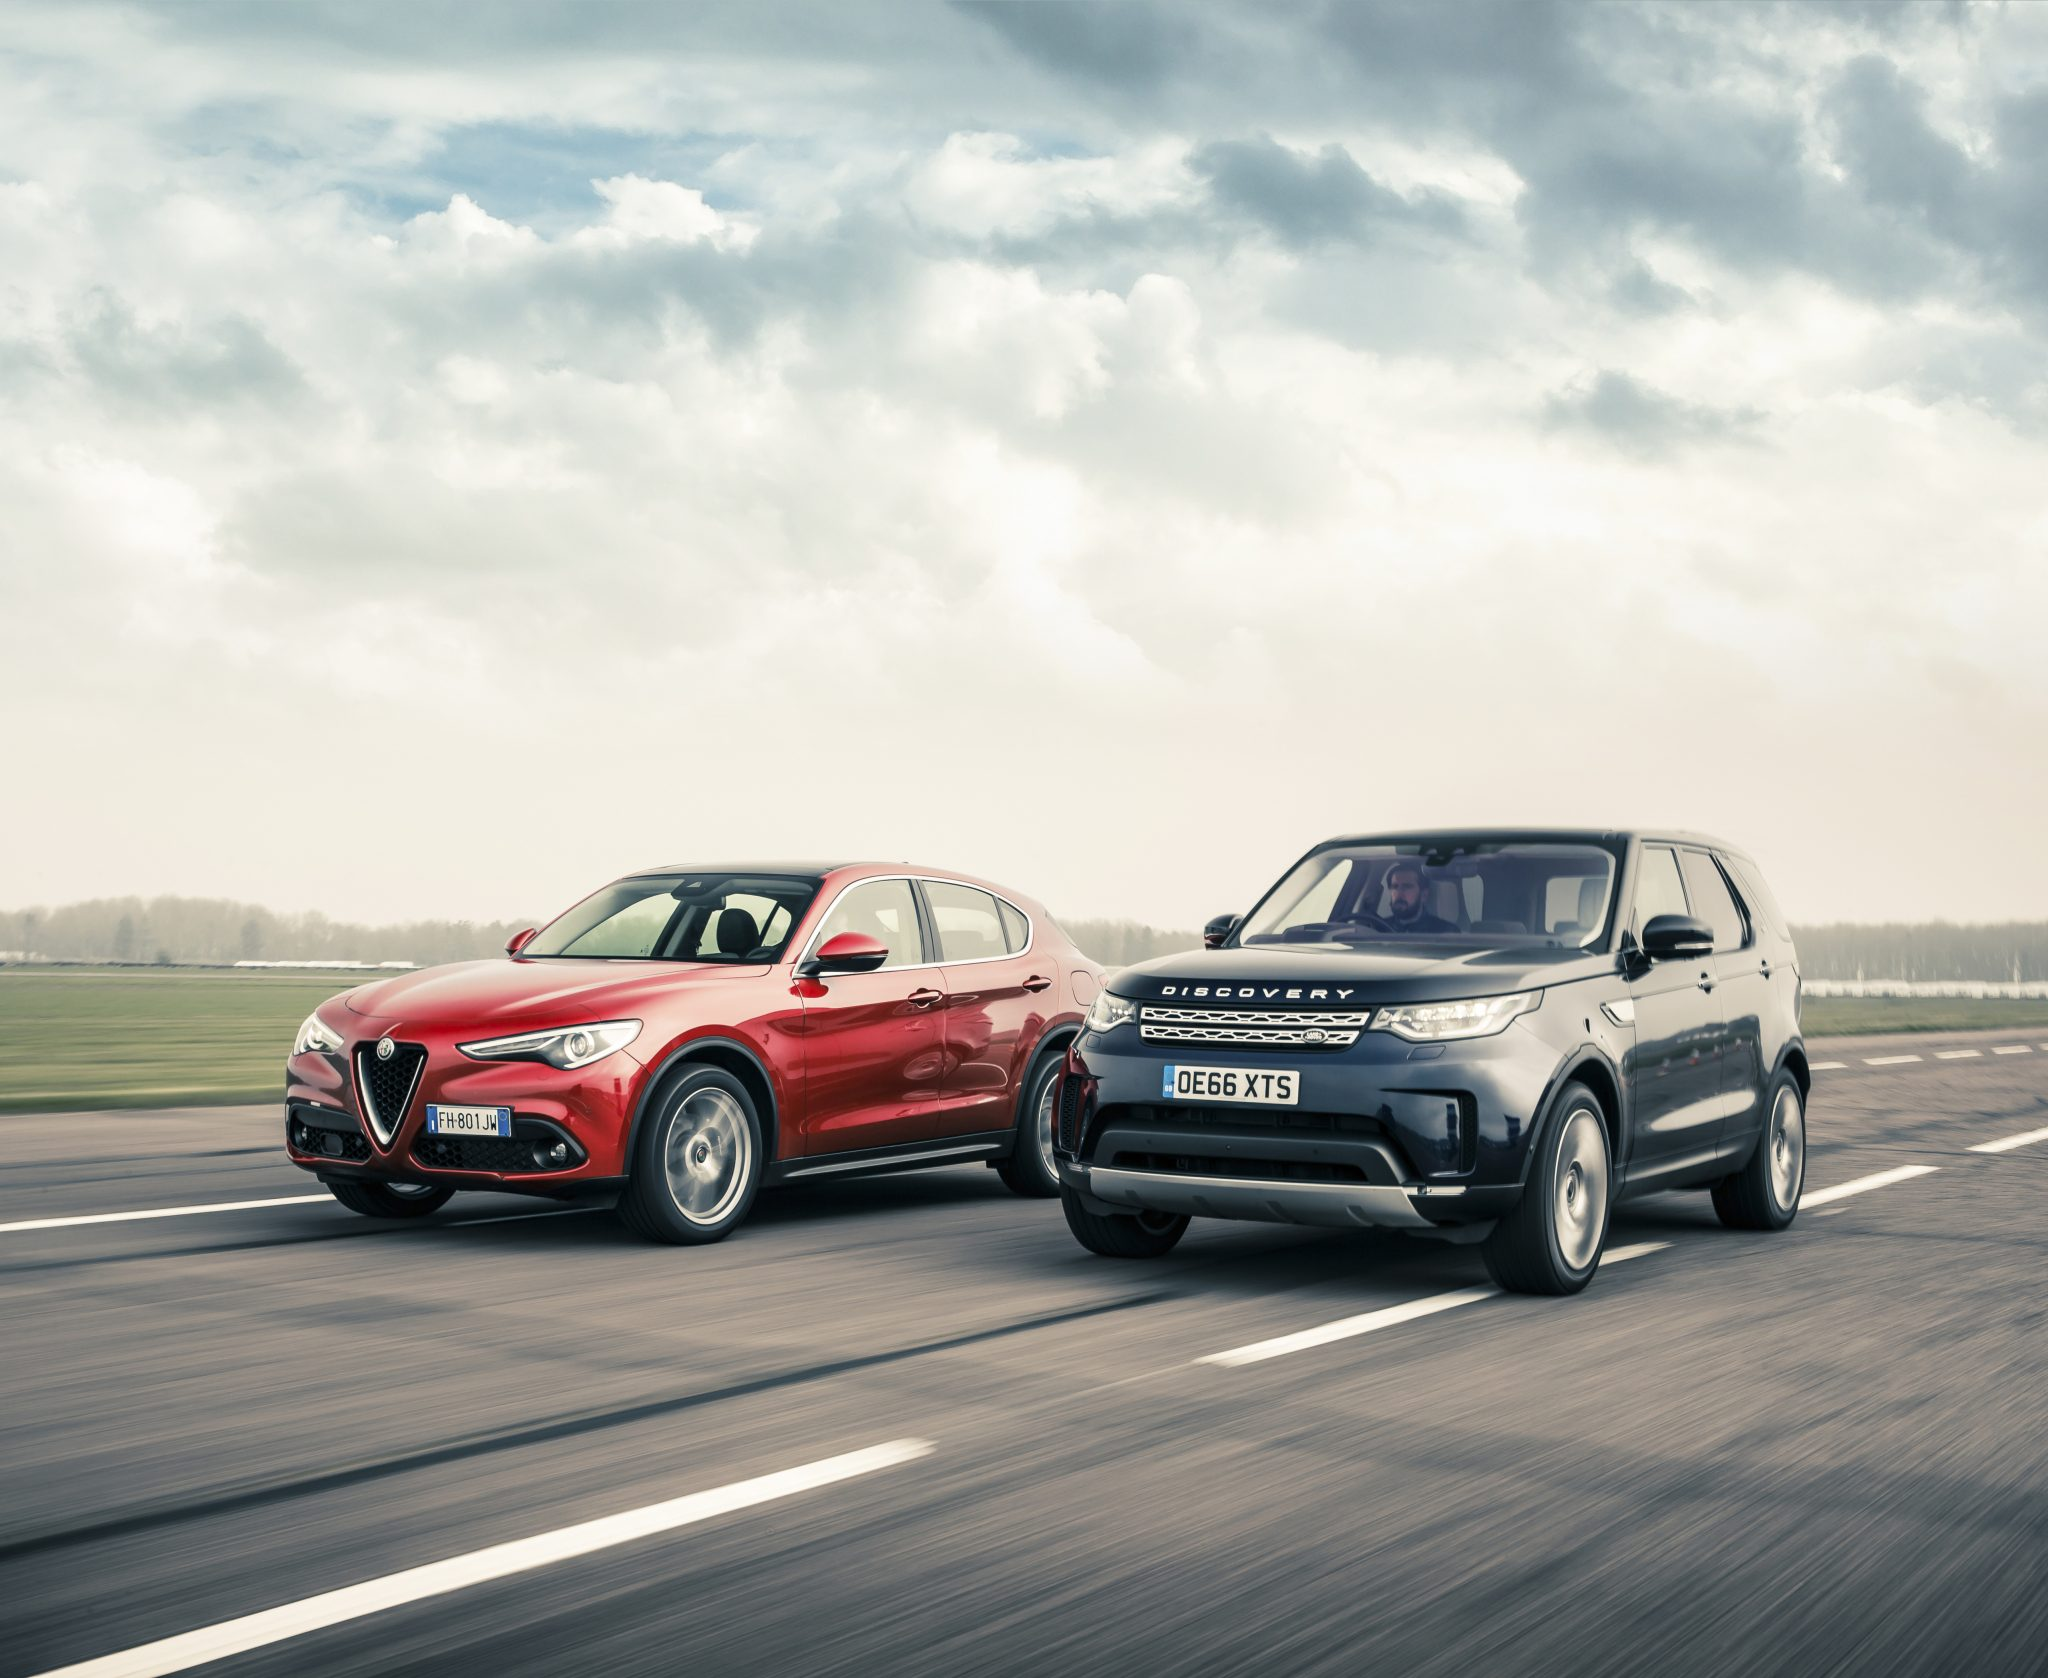 SUV-test: Snelheid